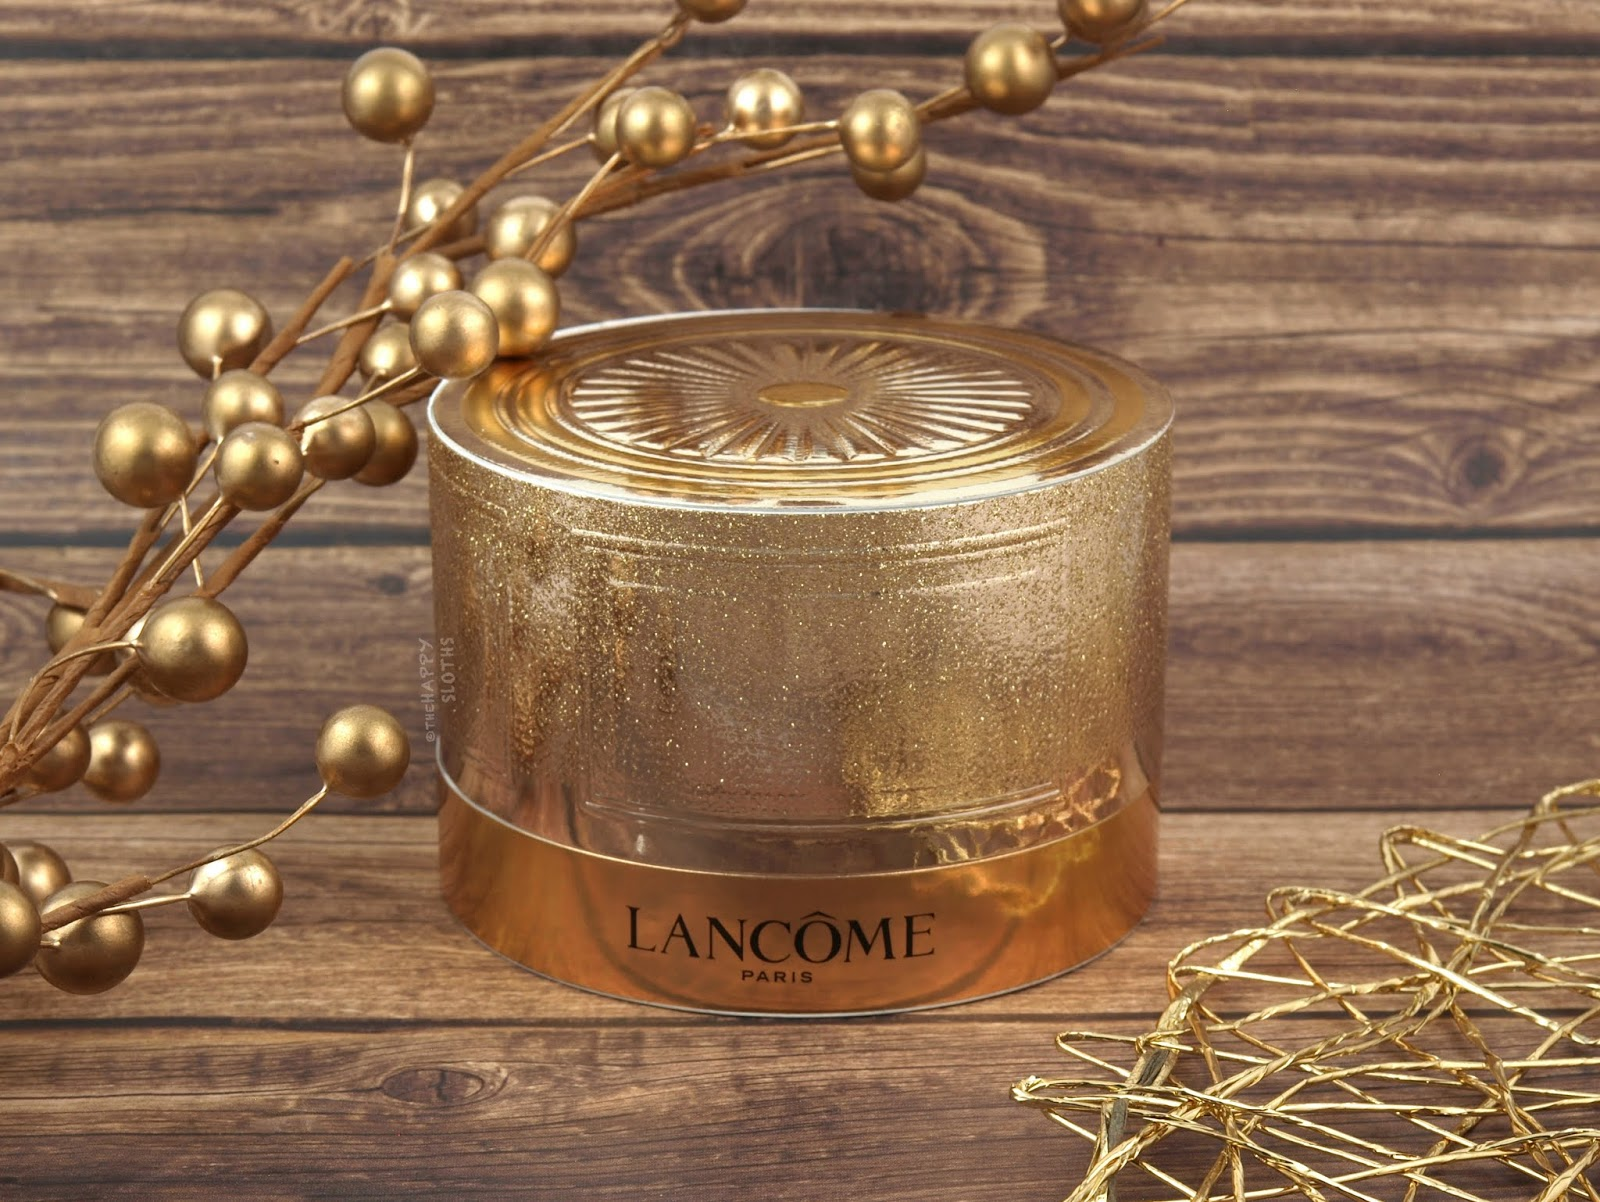 Lancome   Holiday 2018 La Rose À Poudrer Starlight Sparkle Iridescent Gold Highlighter: Review and Swatches